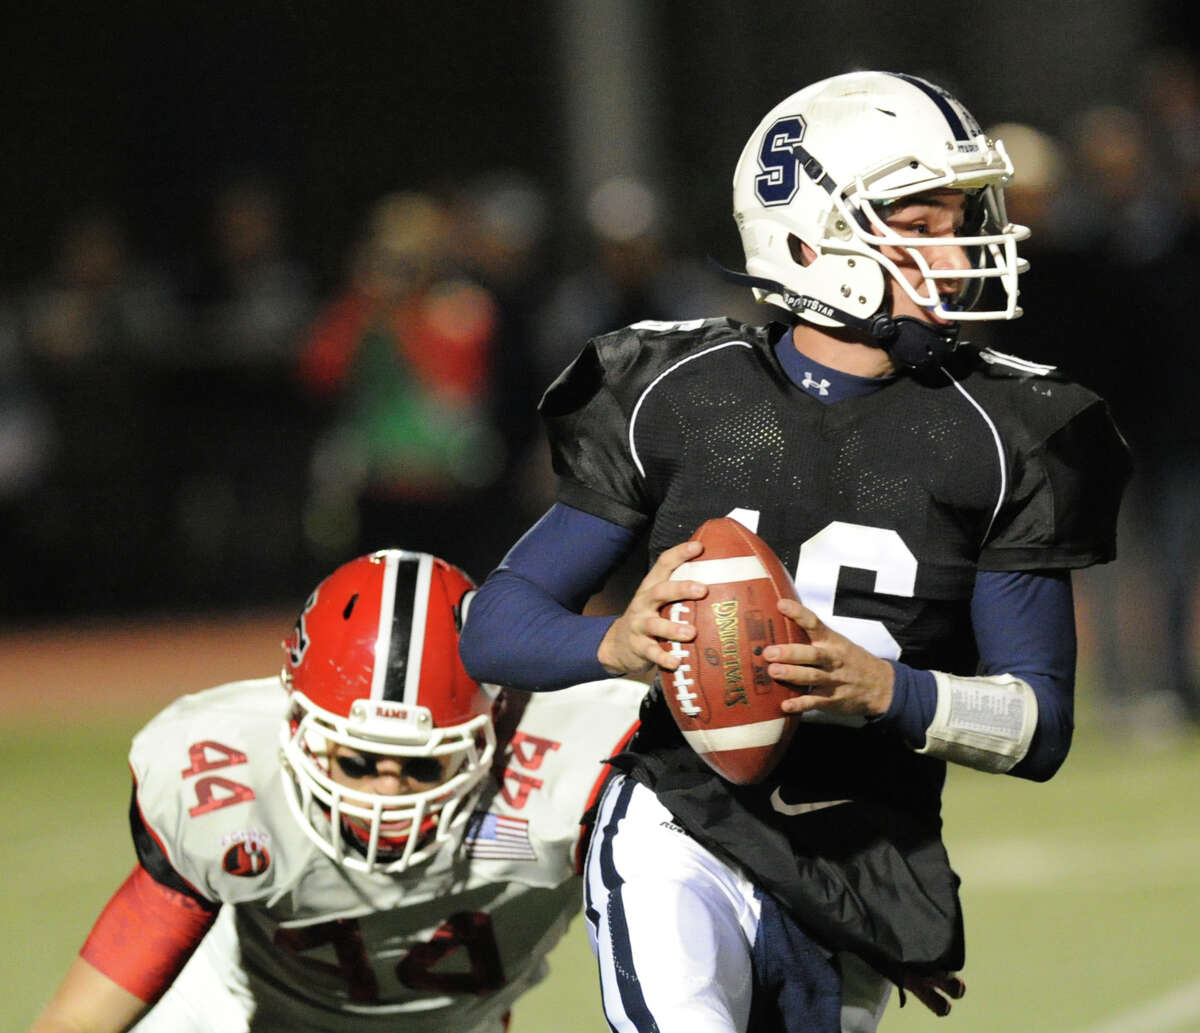 Staples quarterback Jack Massie (# 16), at right, is pursued by Zachary Allen (# 44) of New Canaan during the high School football game between Staples High School and New Canaan High School at Staples in Westport, Friday night, Oct. 25, 2013.